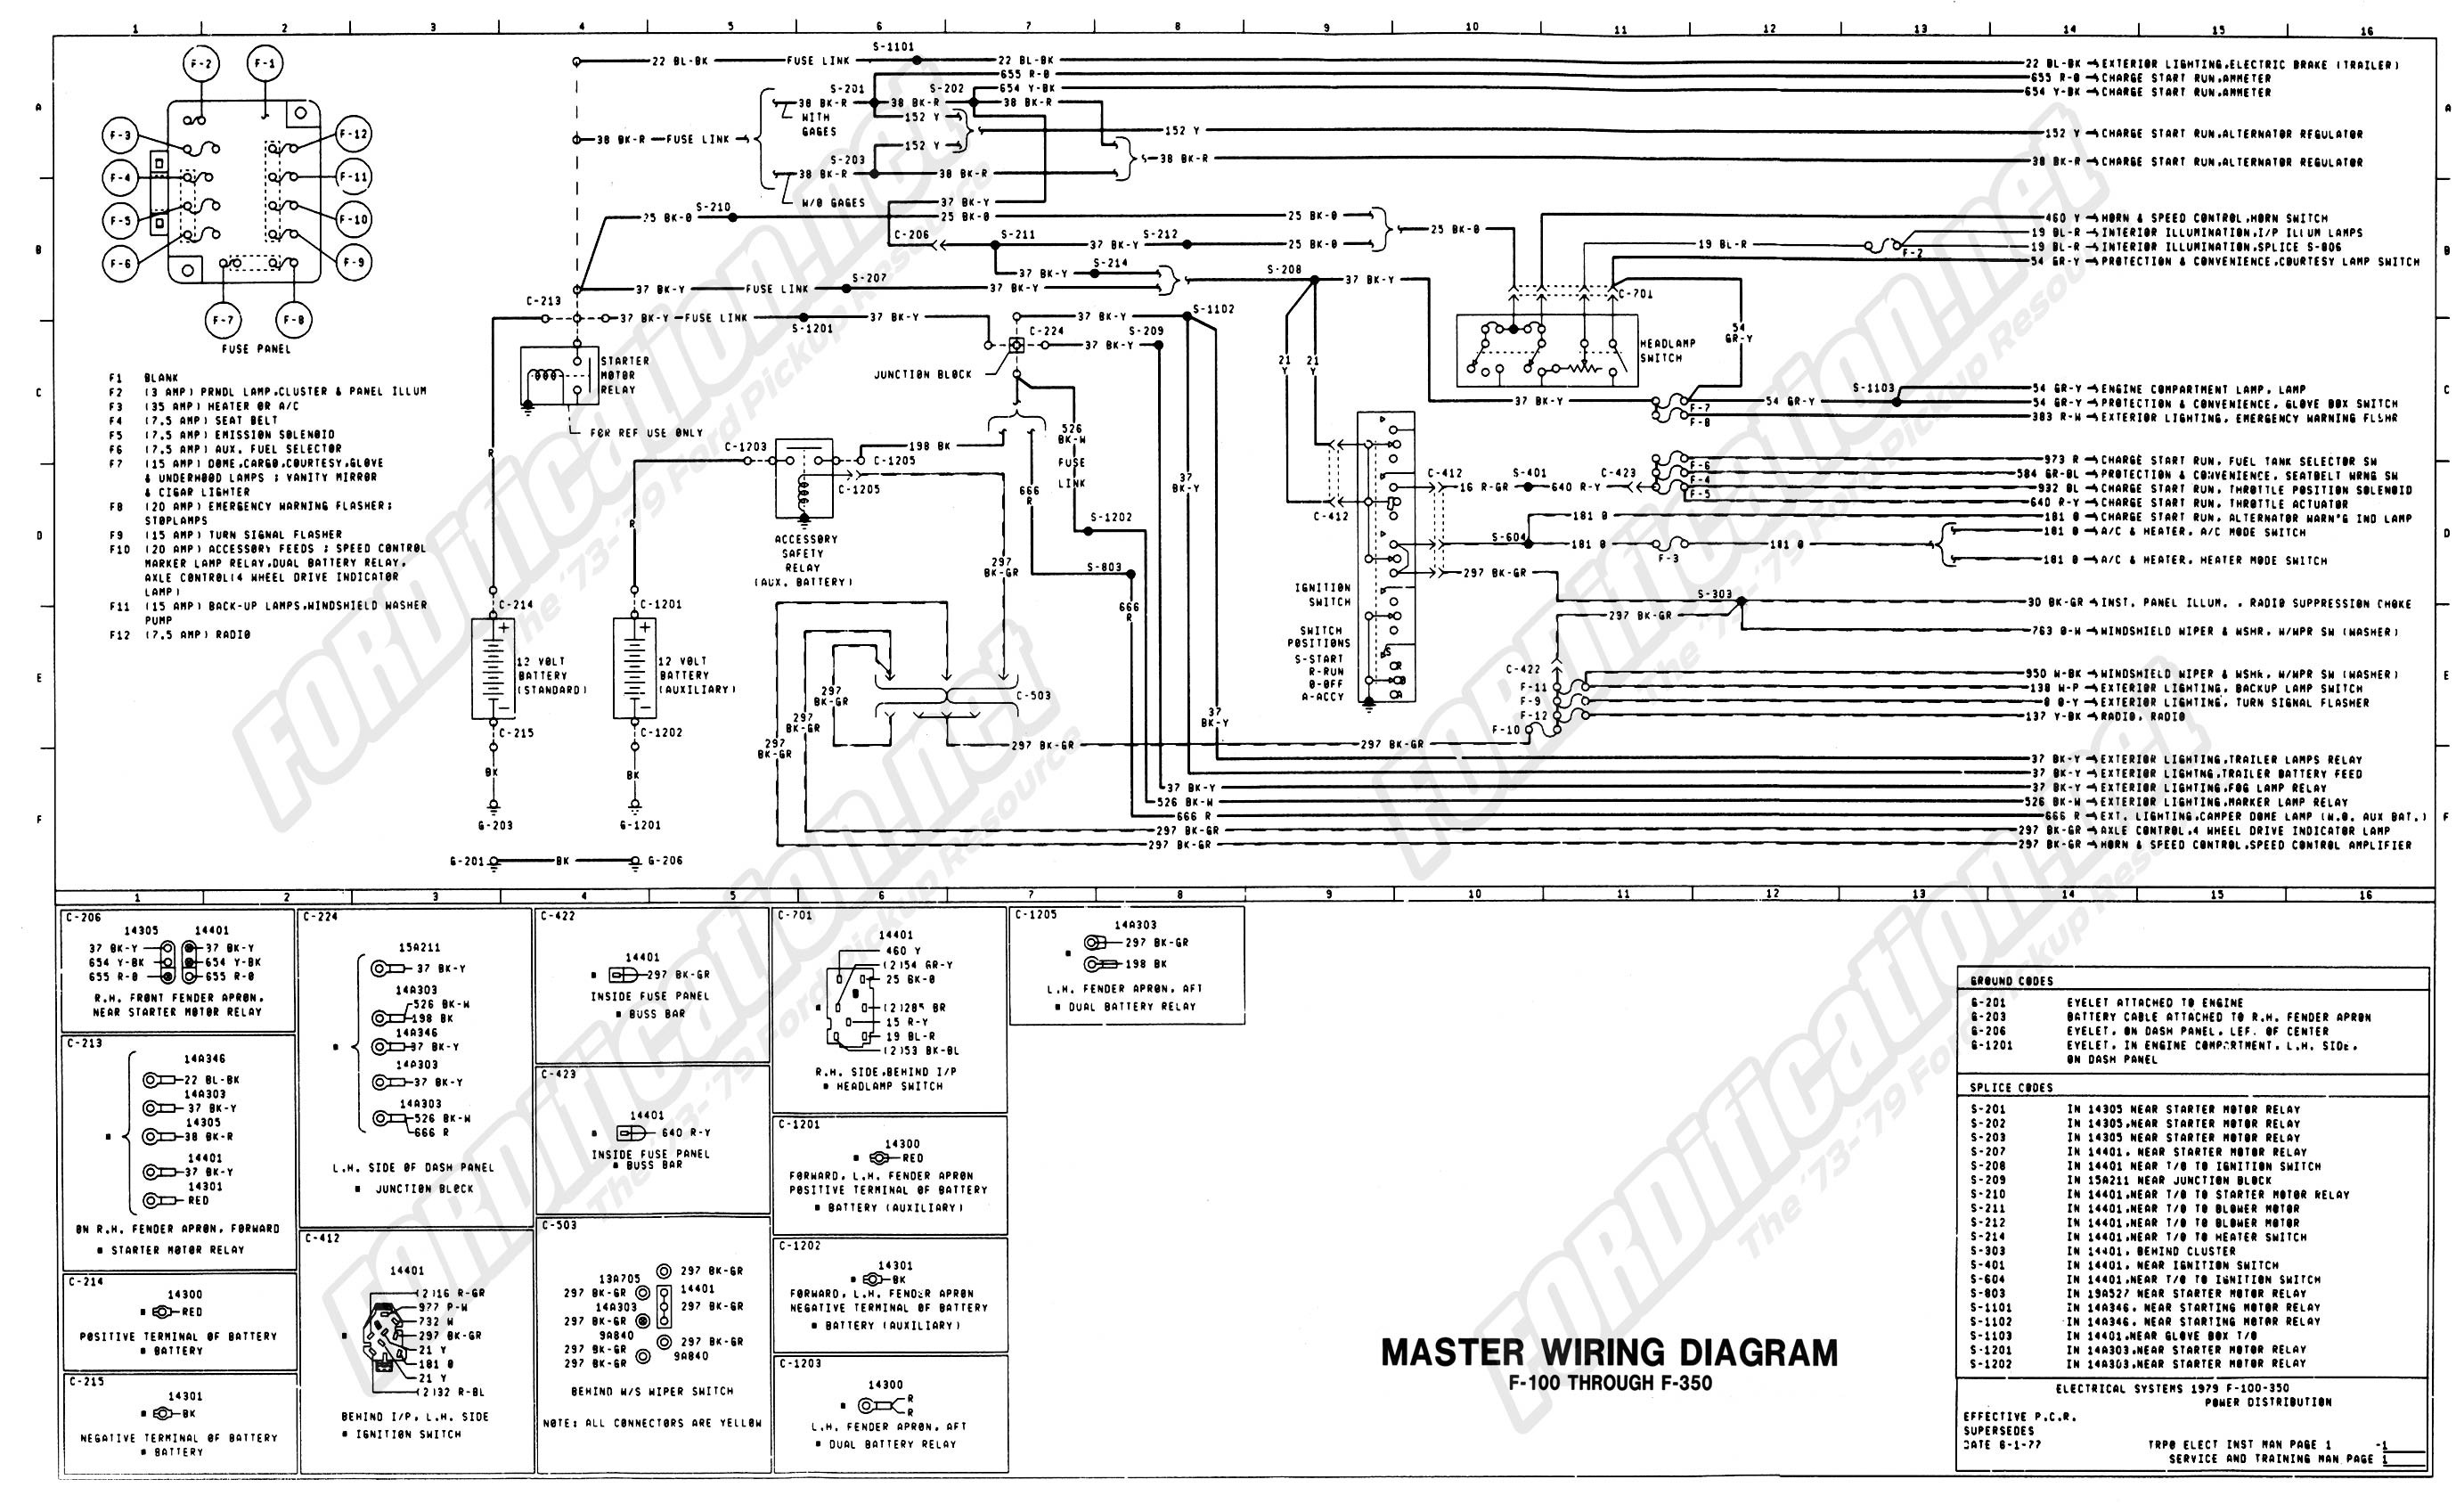 ... rv slide out switch wiring diagram , source:wiringdiagram.today 1of9